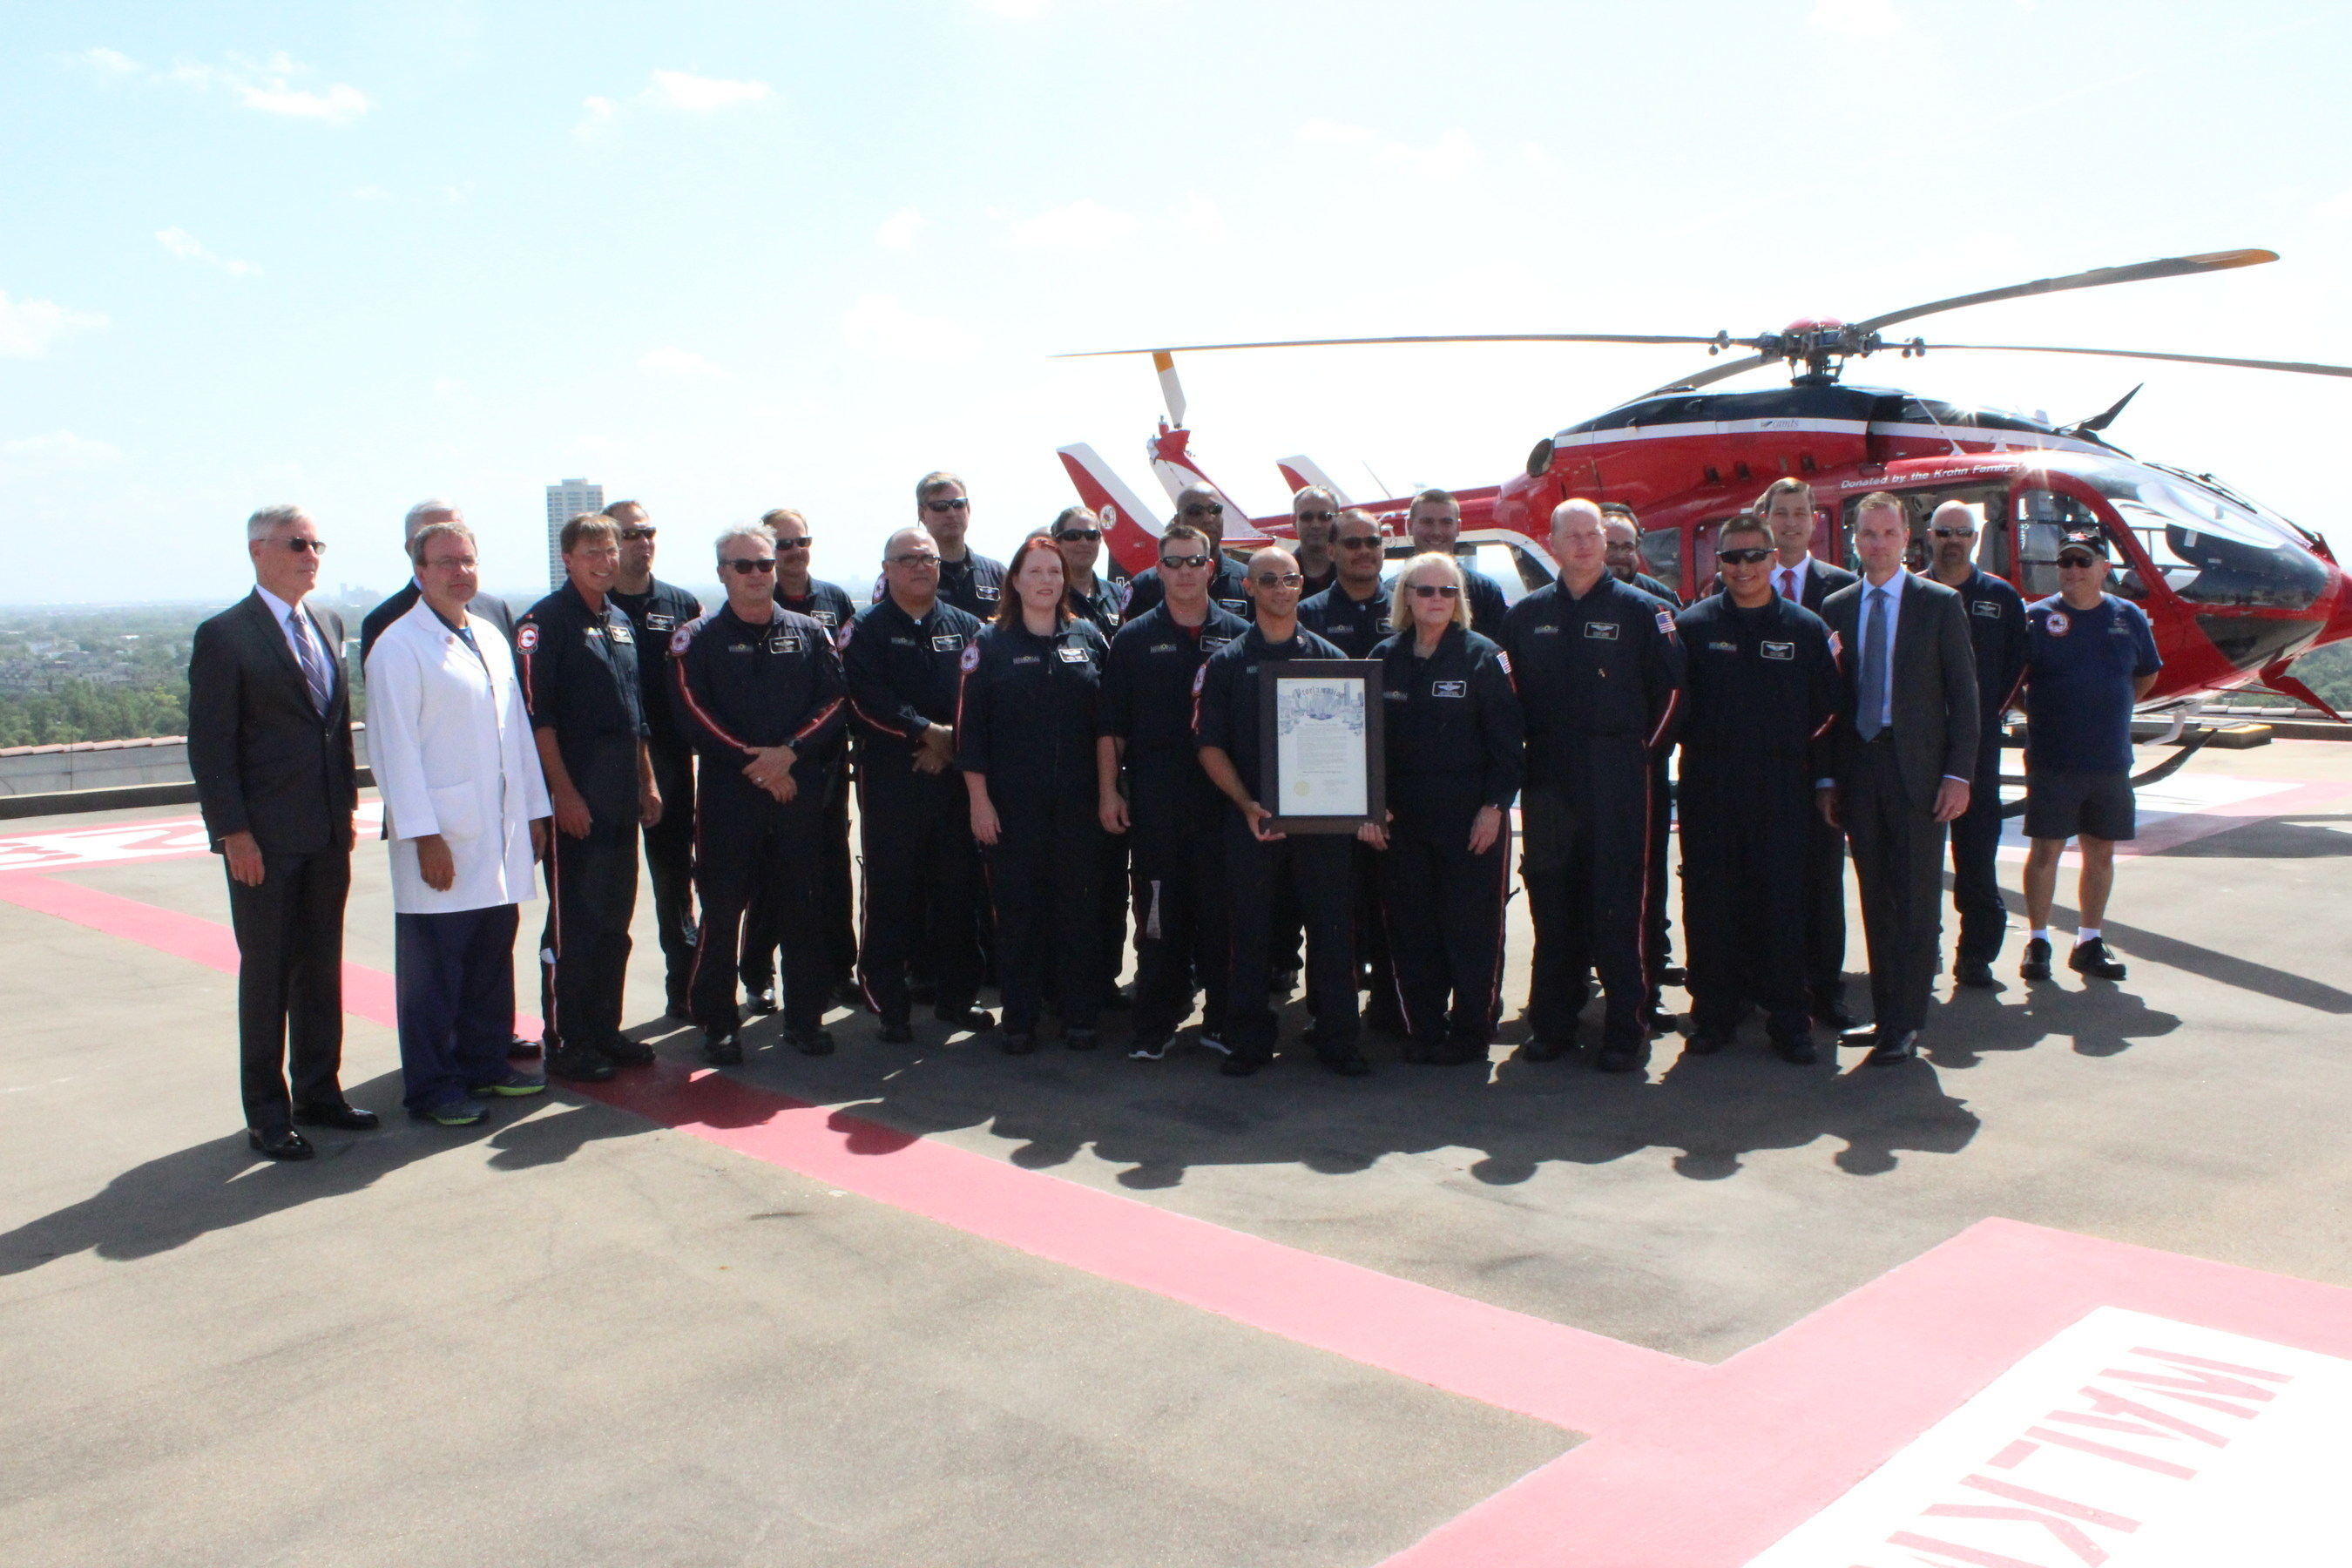 40 Years of Life Flight, 40 Days of Thanks